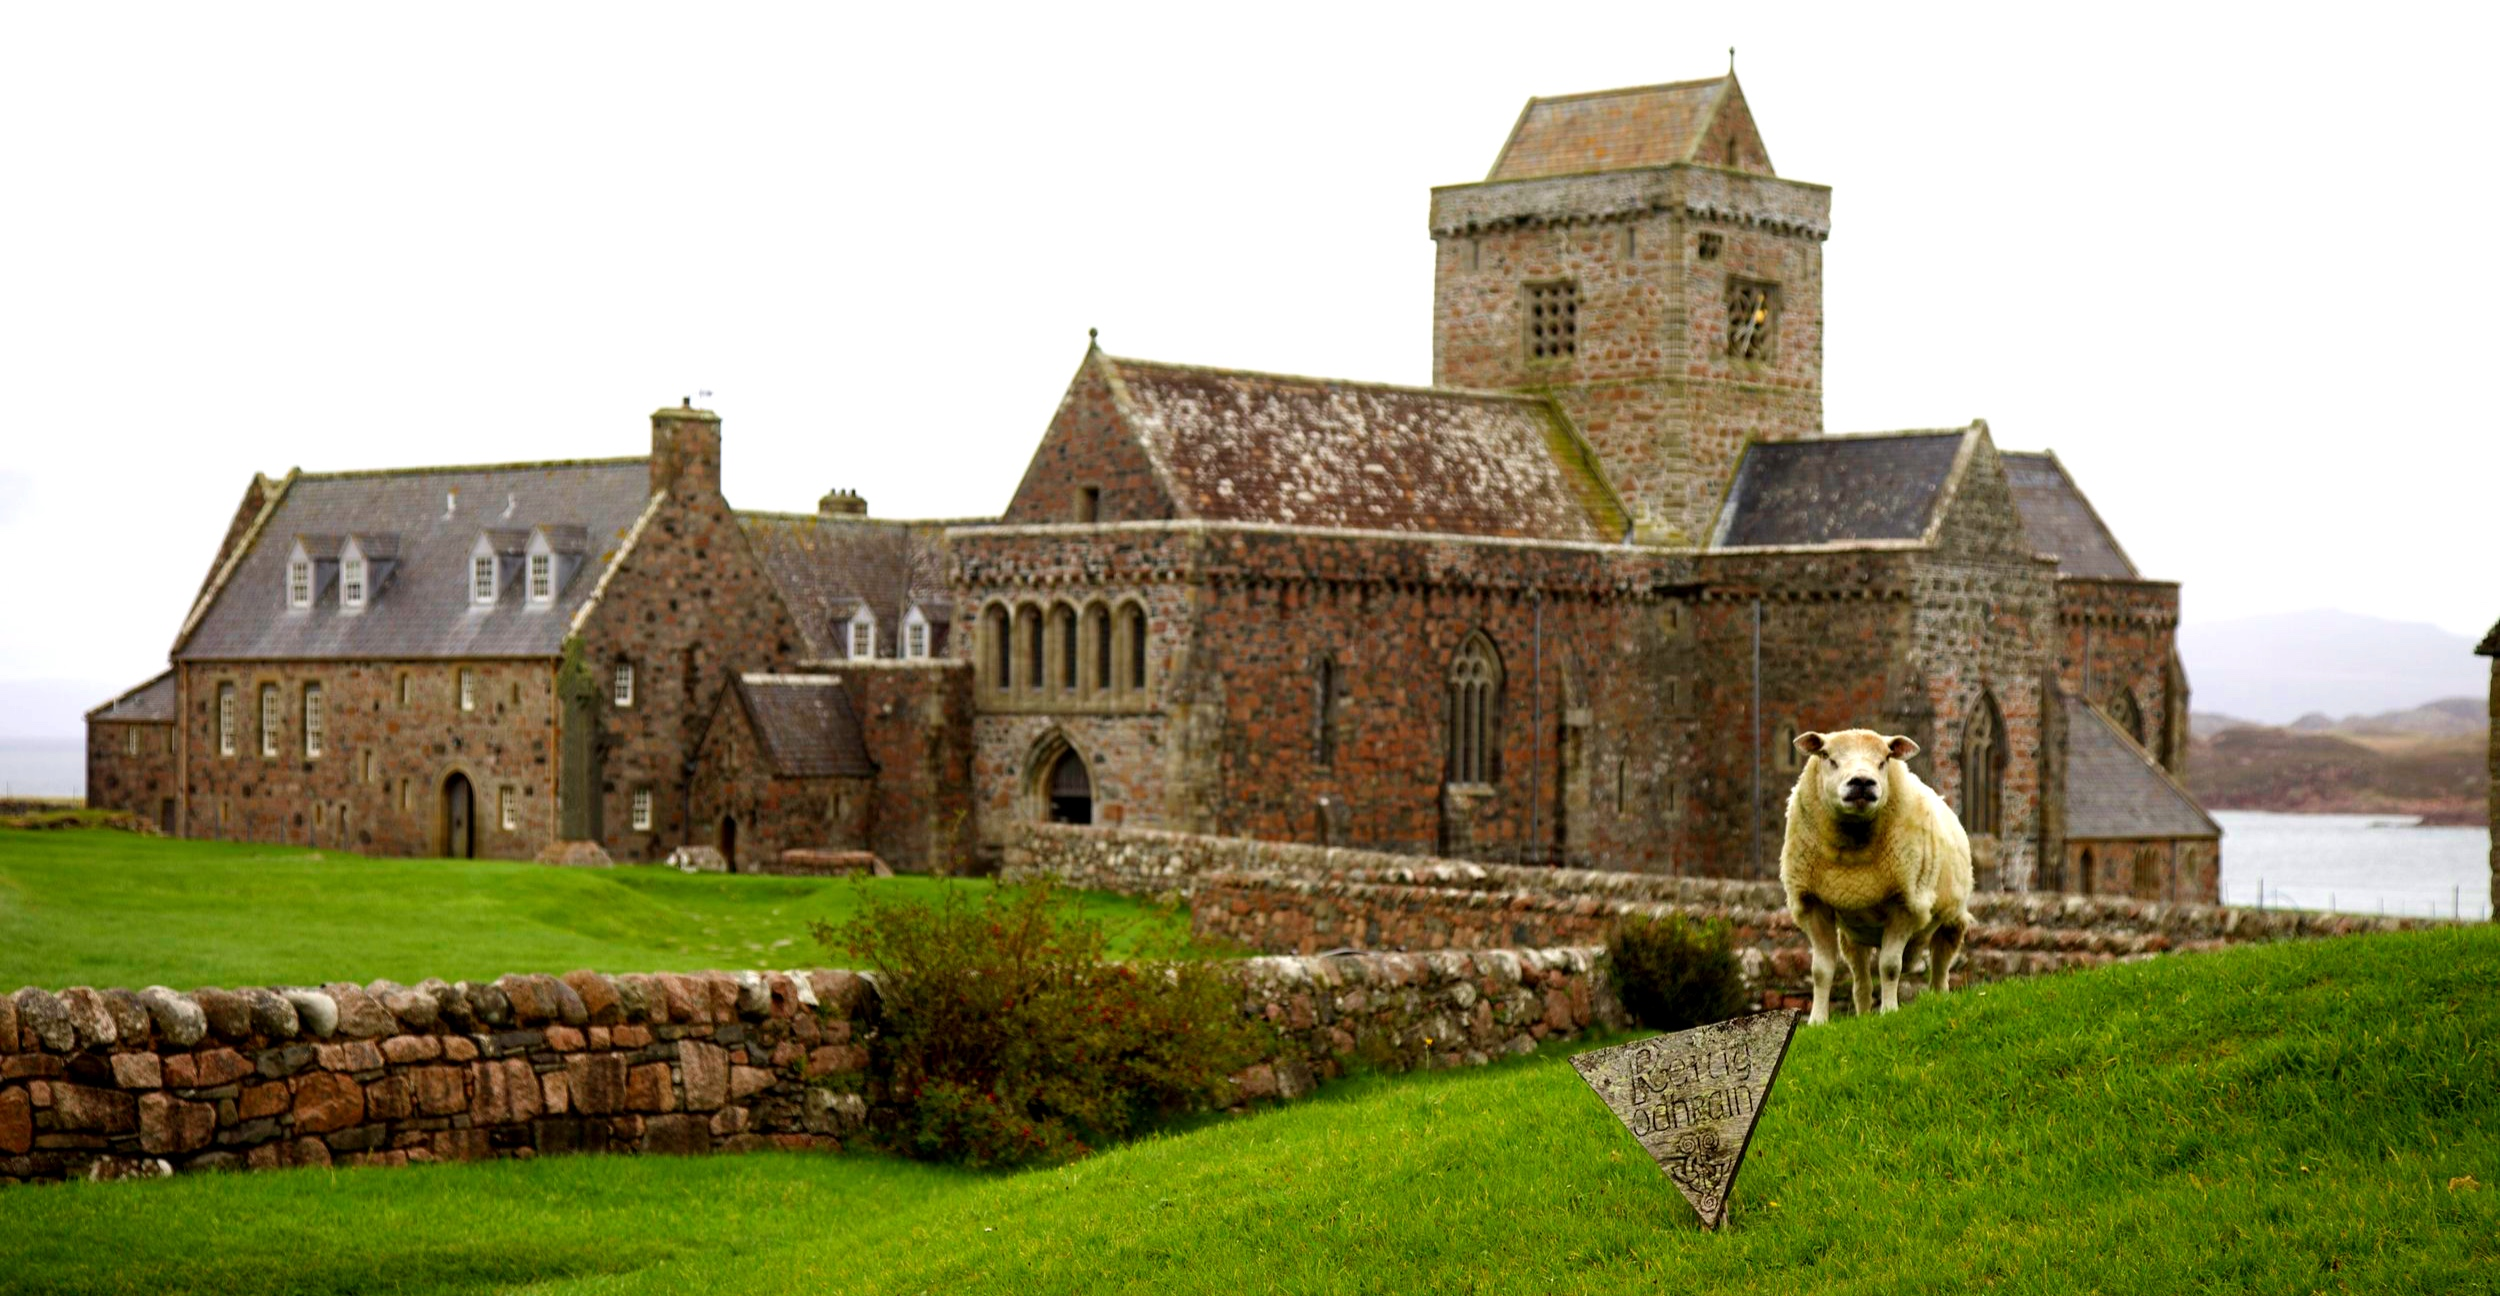 Iona+church+w+sheep.jpg